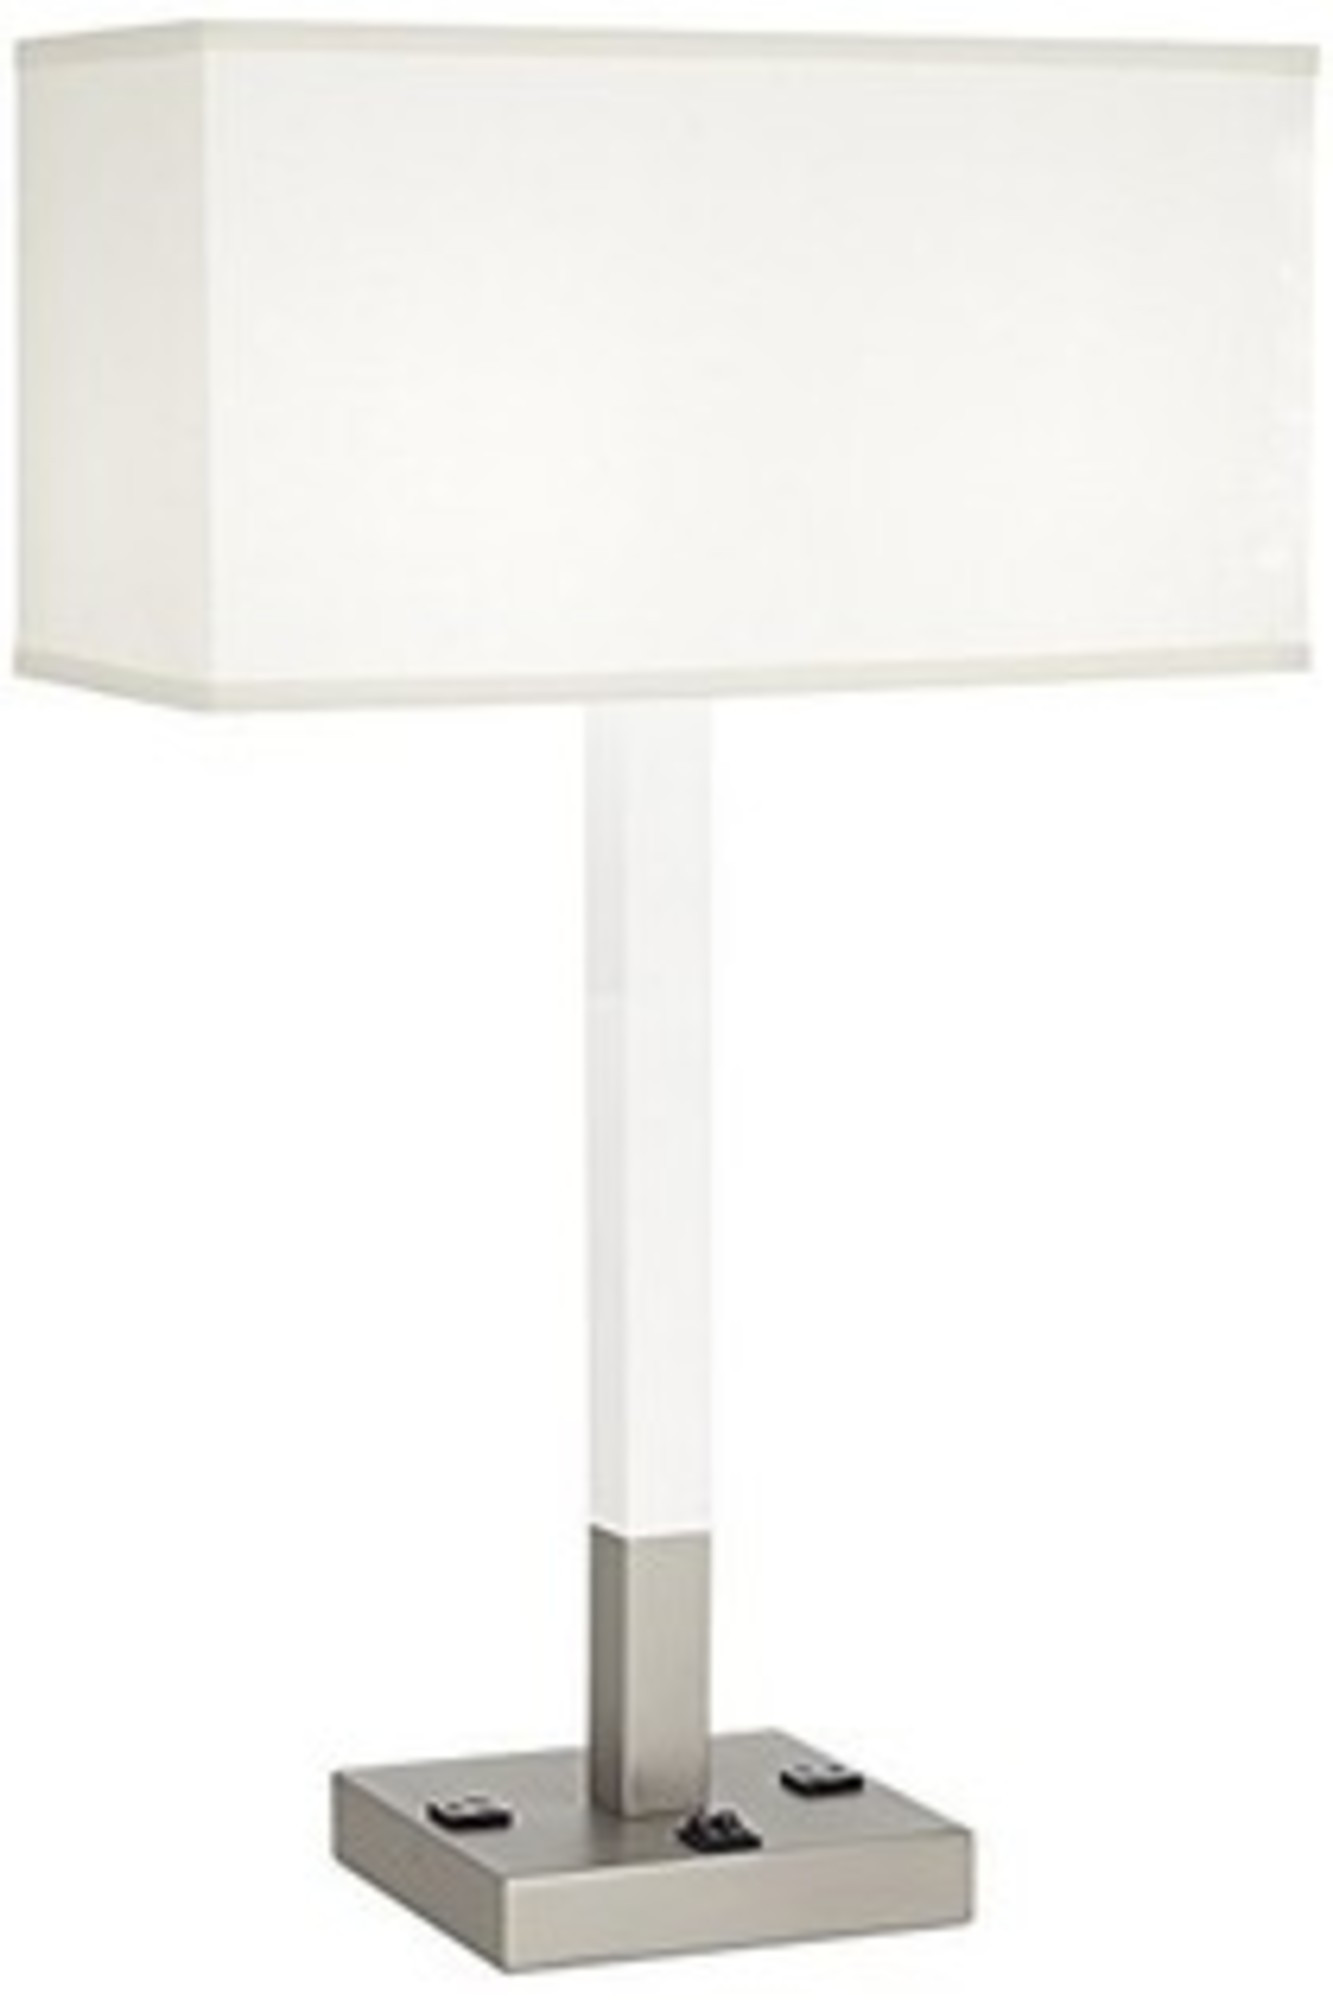 Best ideas about Desk Lamp With Outlet . Save or Pin Best Table Lamps with Power Outlets Electrical Outlet in Now.